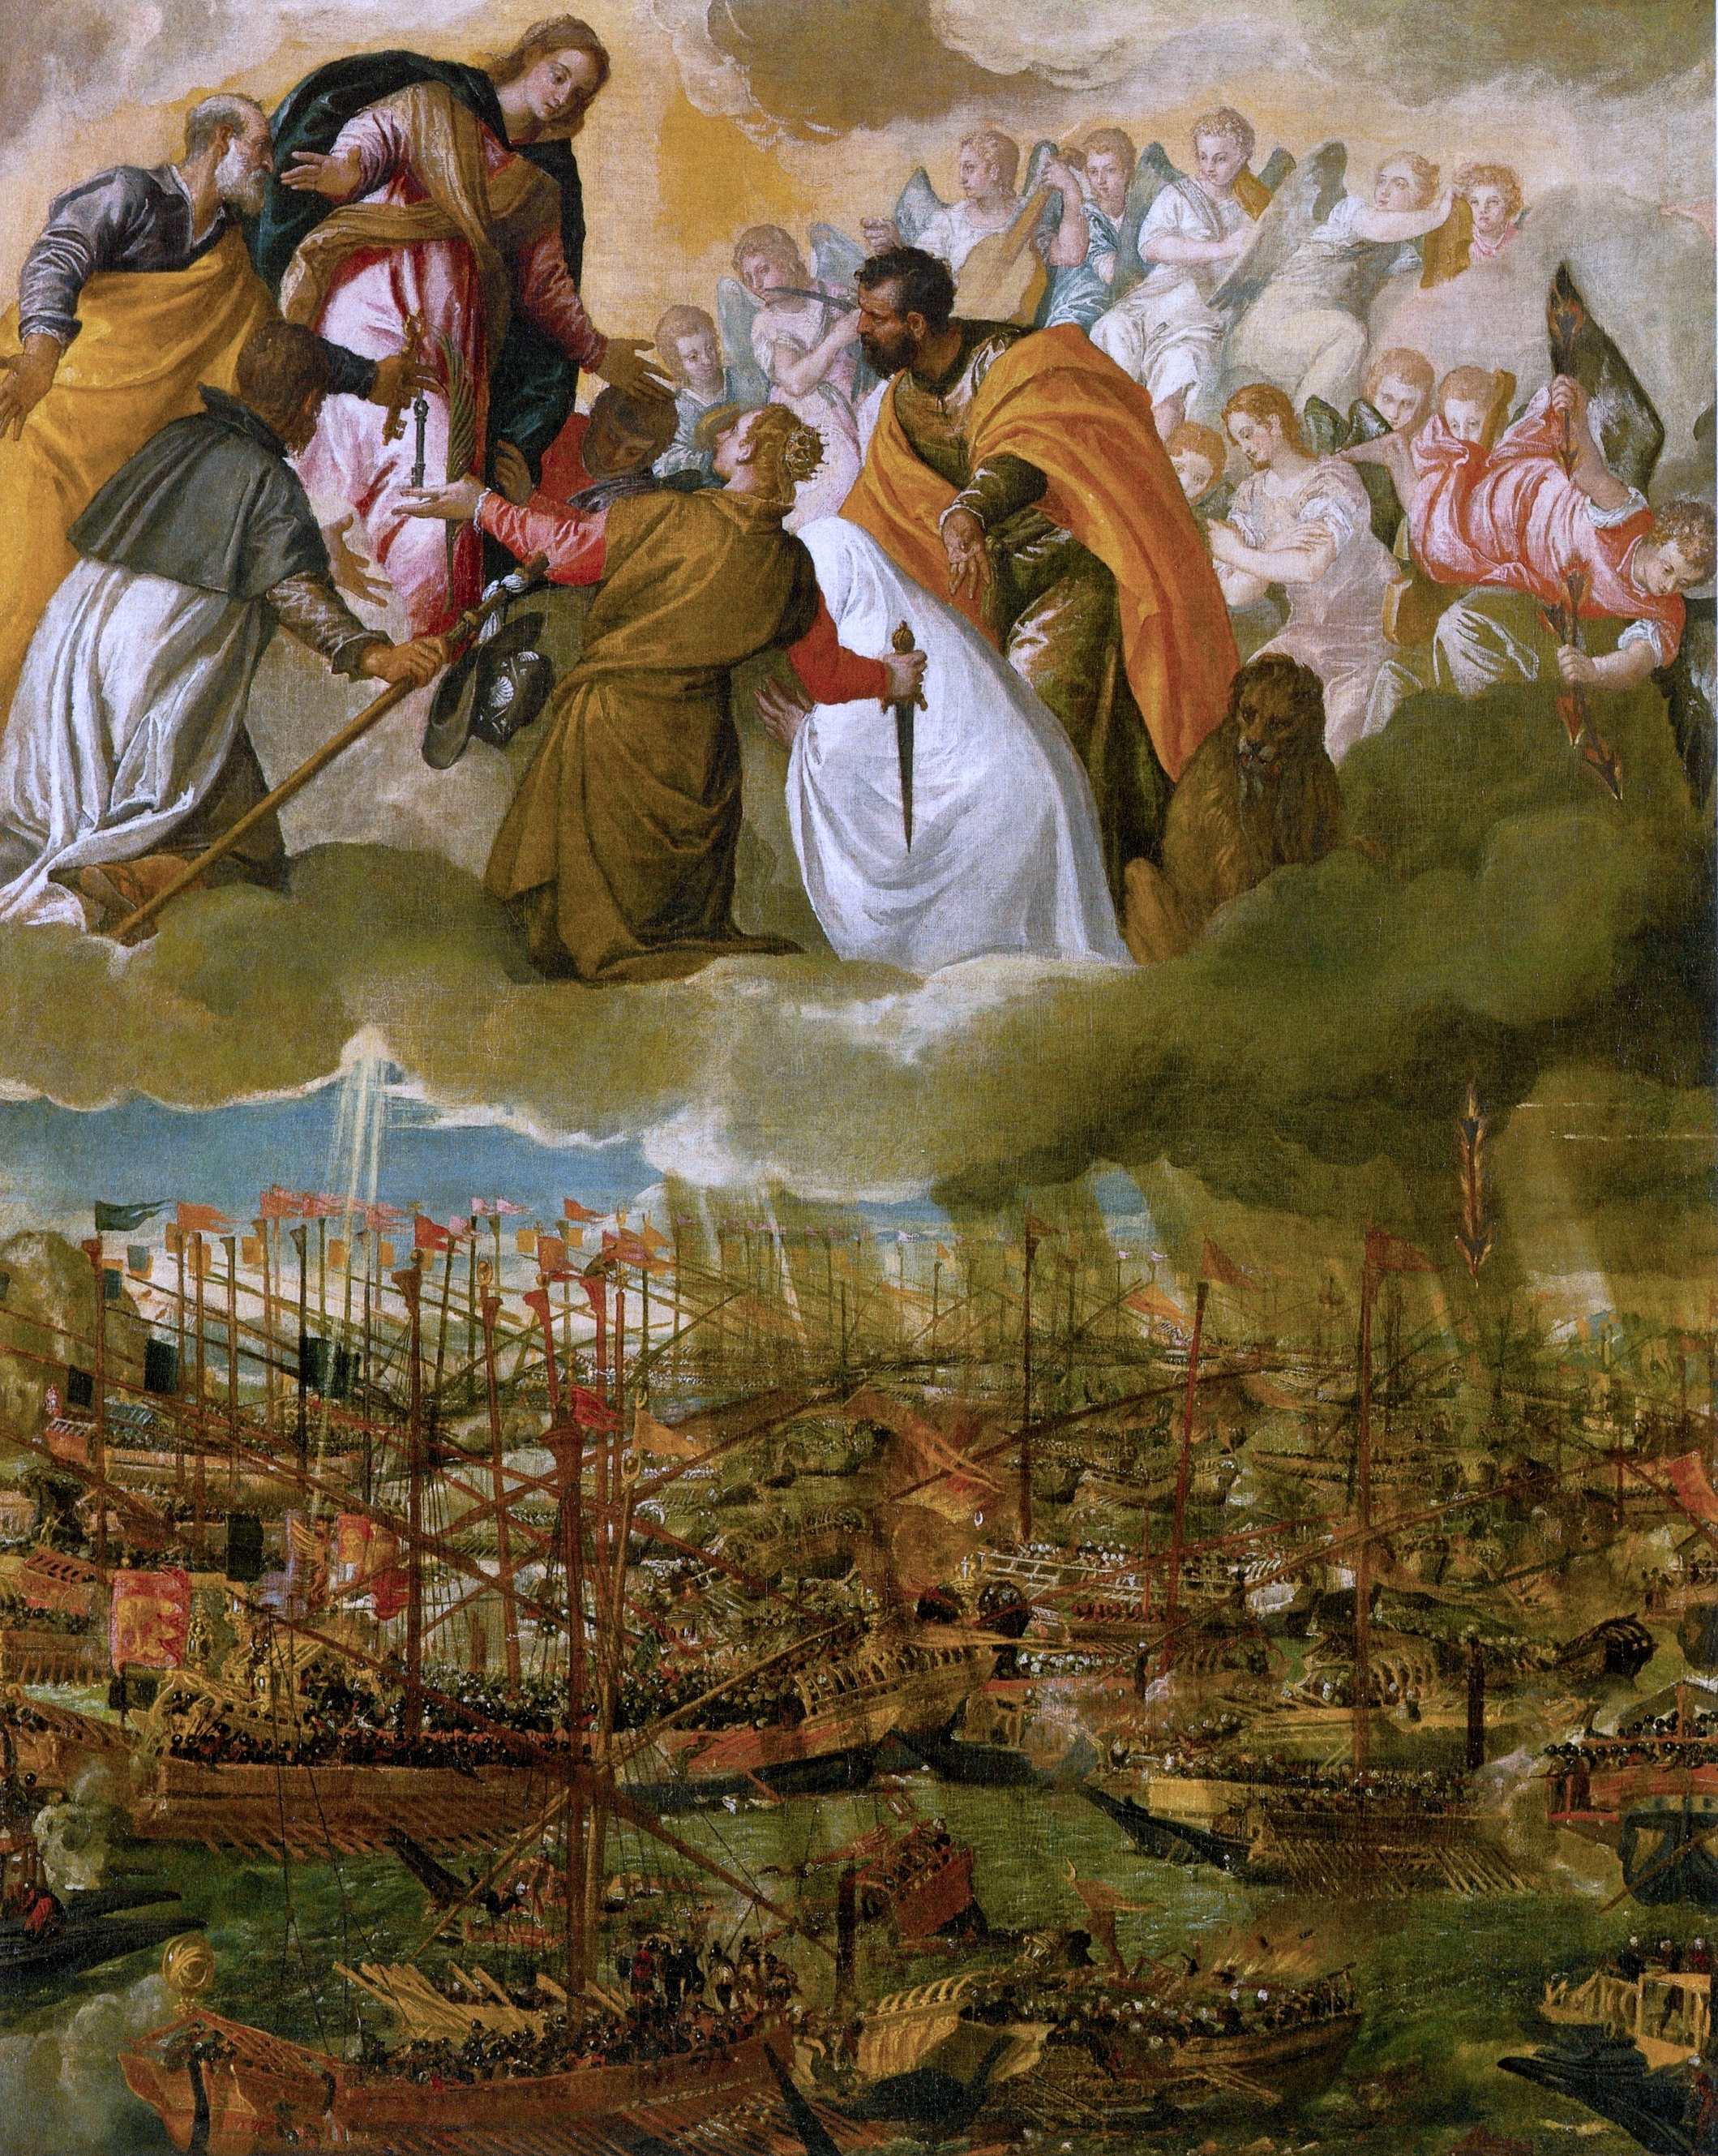 Veronese - The Battle of Lepanto in 1571 was billed as a great victory for the Venetians, who of course had Christianity on their side. In fact it marked the end of Venetian dominance of the eastern Mediterranean.